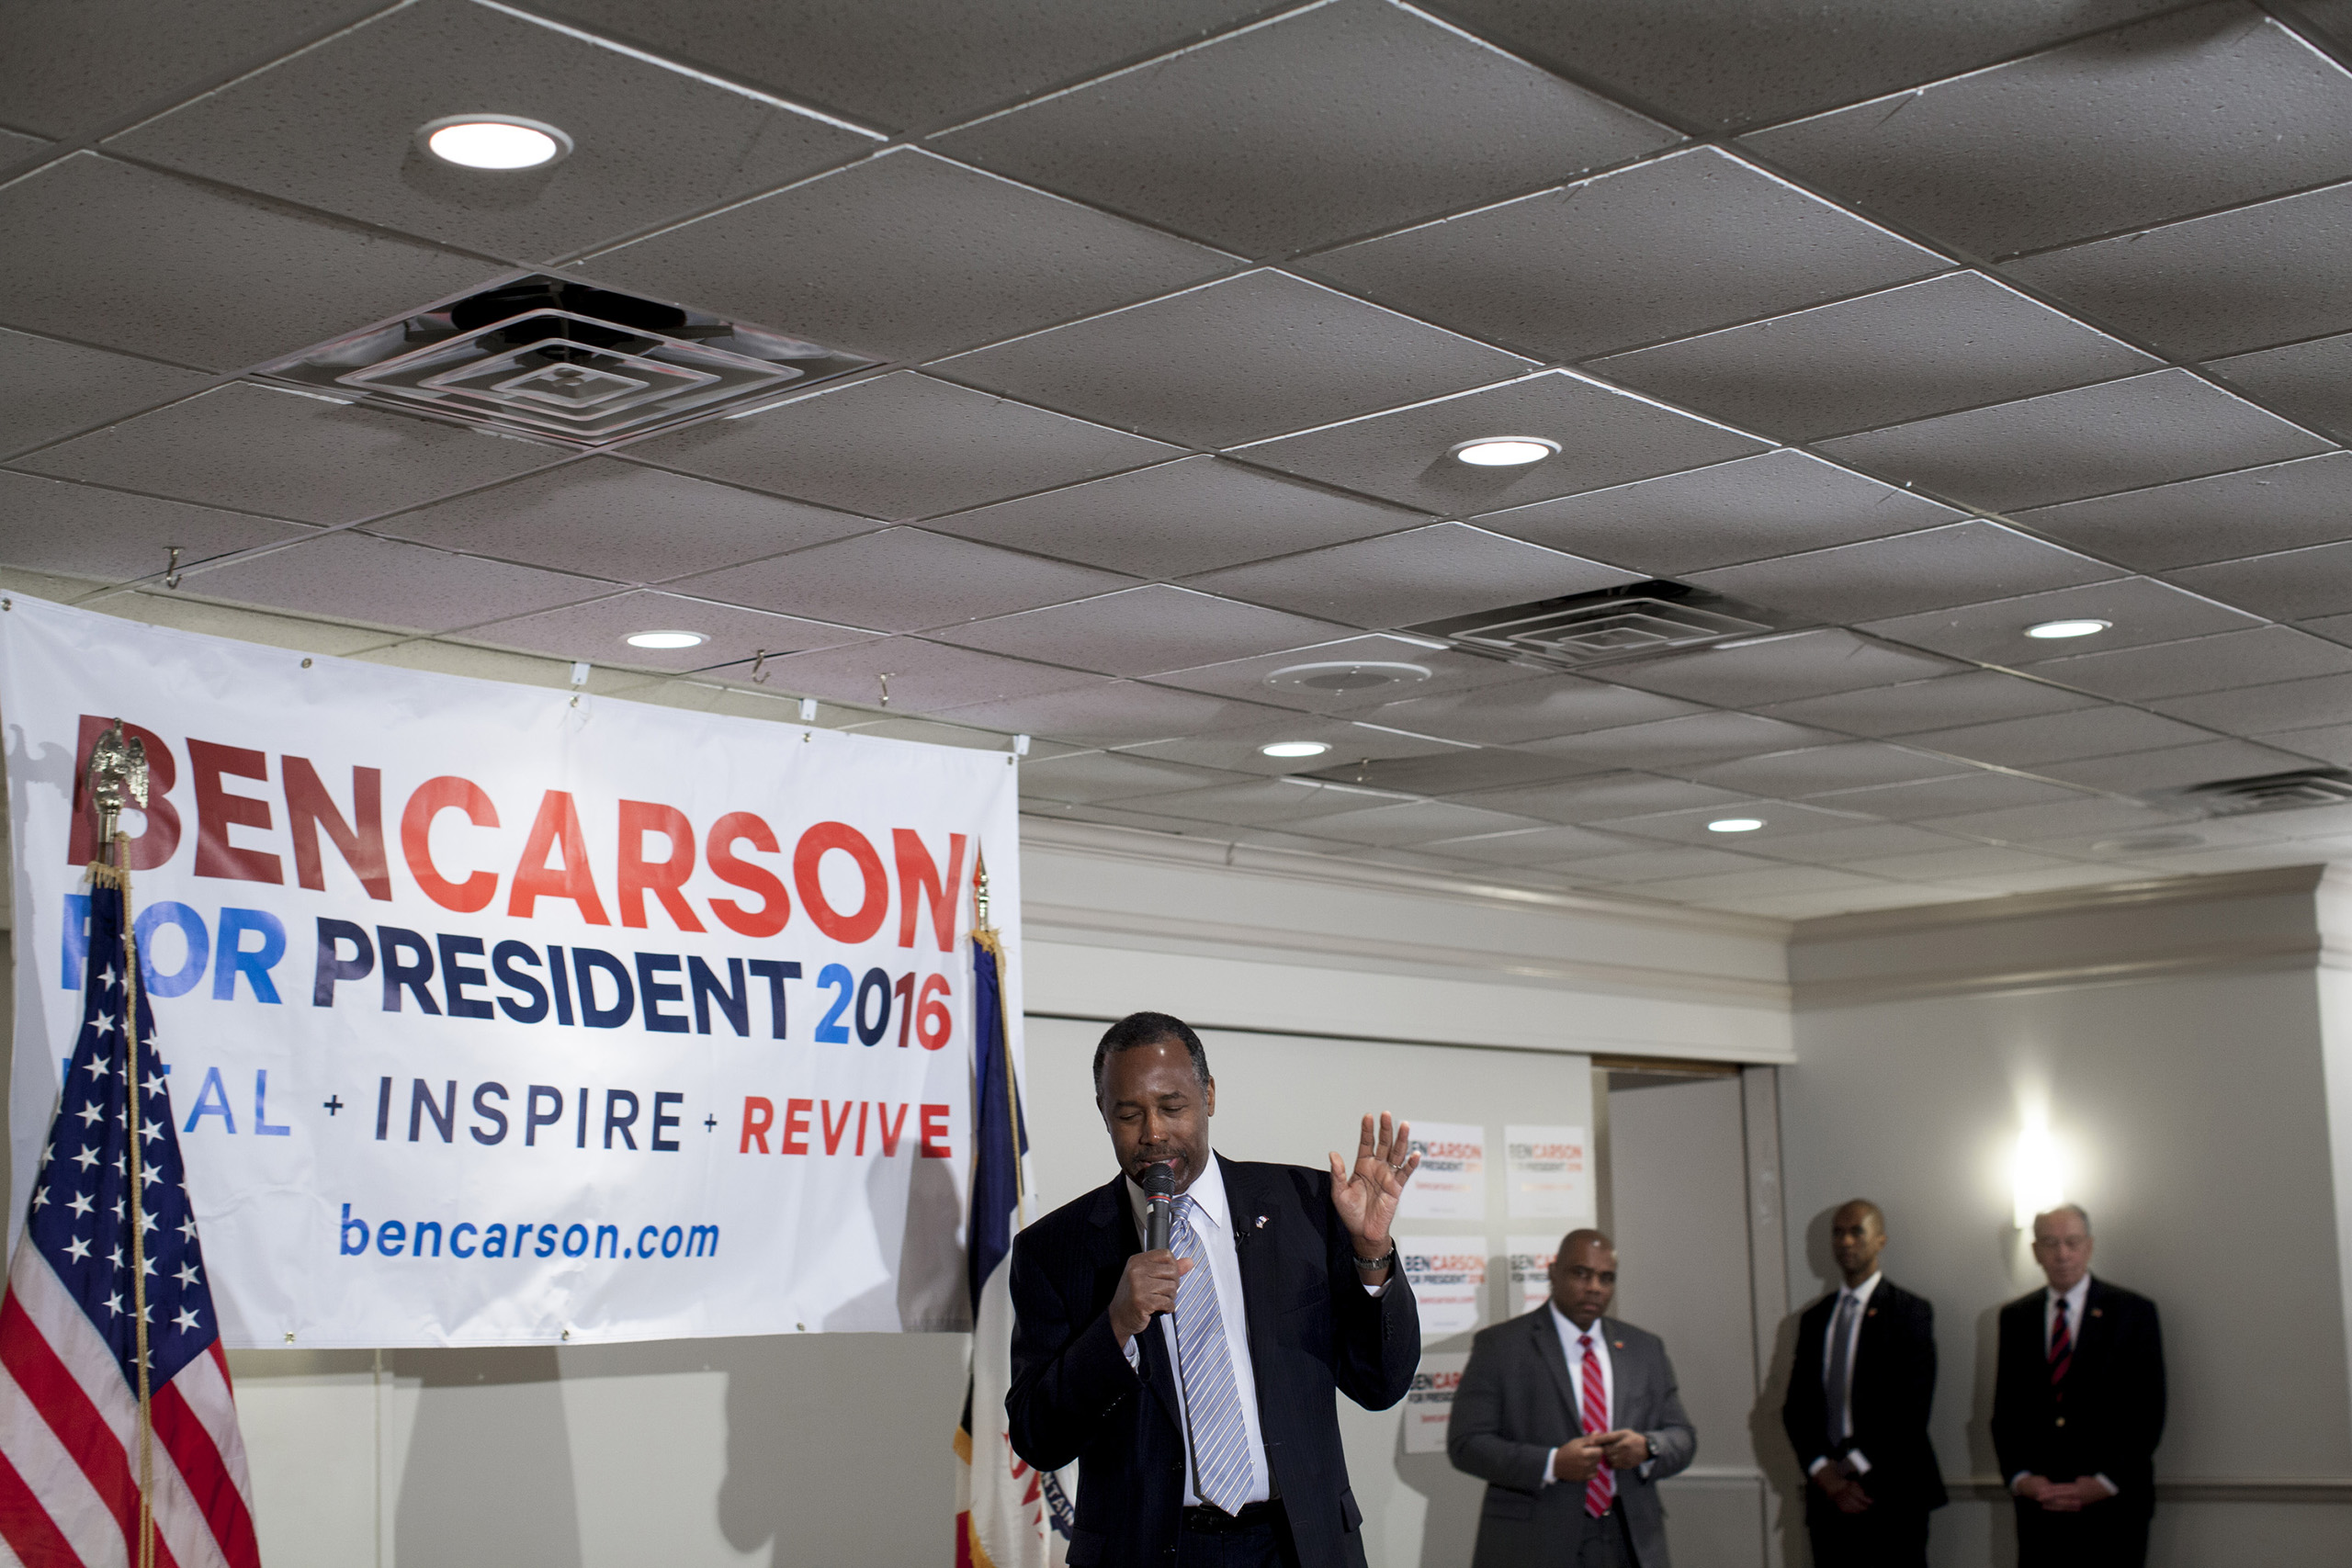 Ben Carson spoke to supporters this afternoon at The University Club in Iowa City on January 29th.